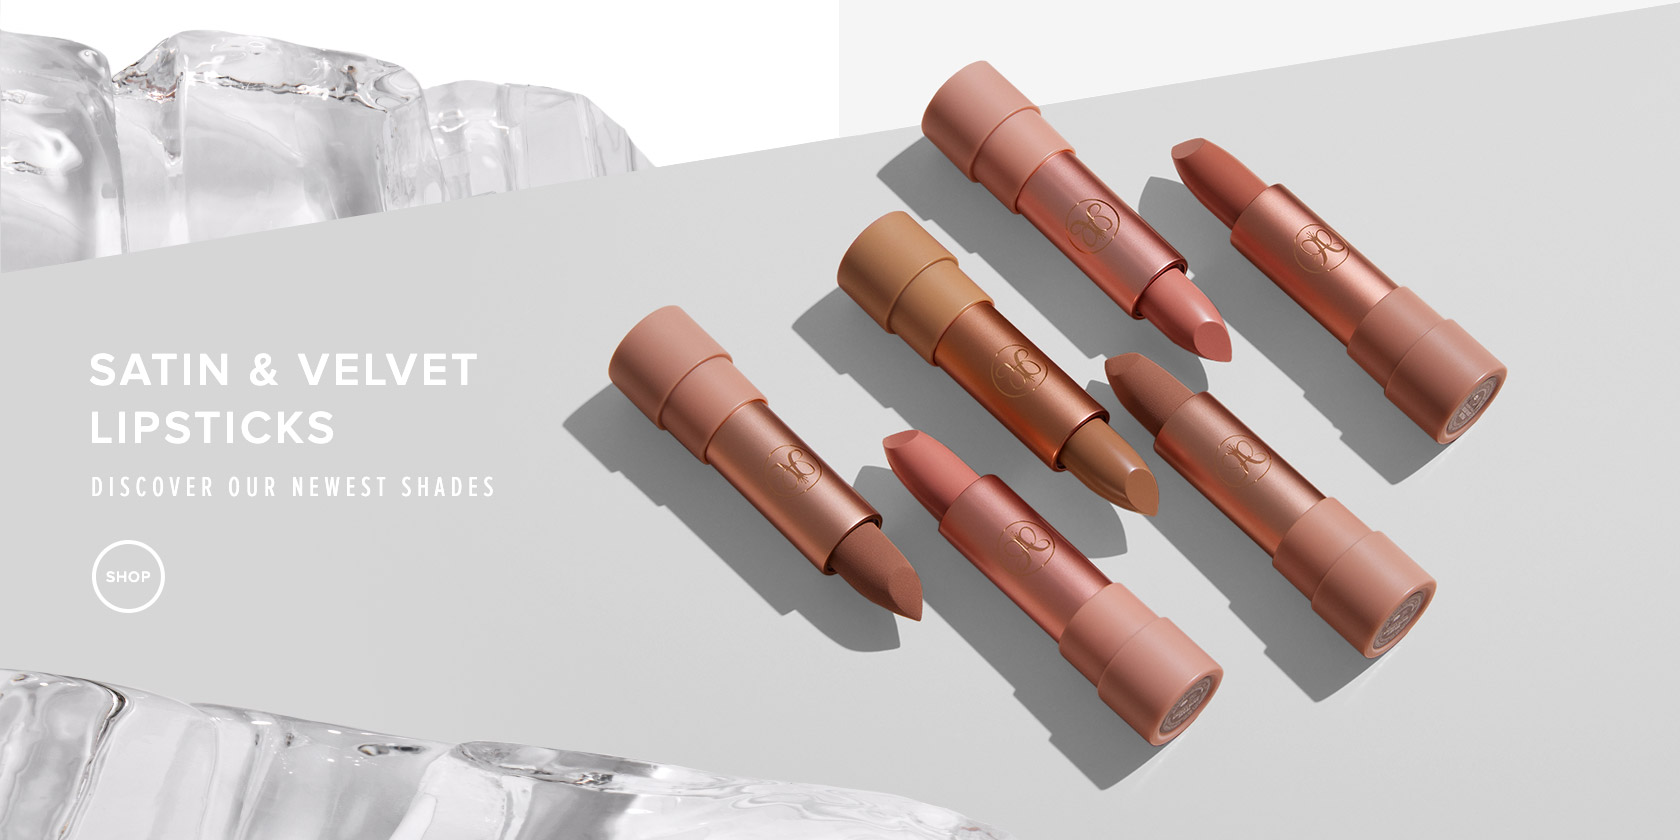 Satin and Velvet Lipstick - Discover our newest shades